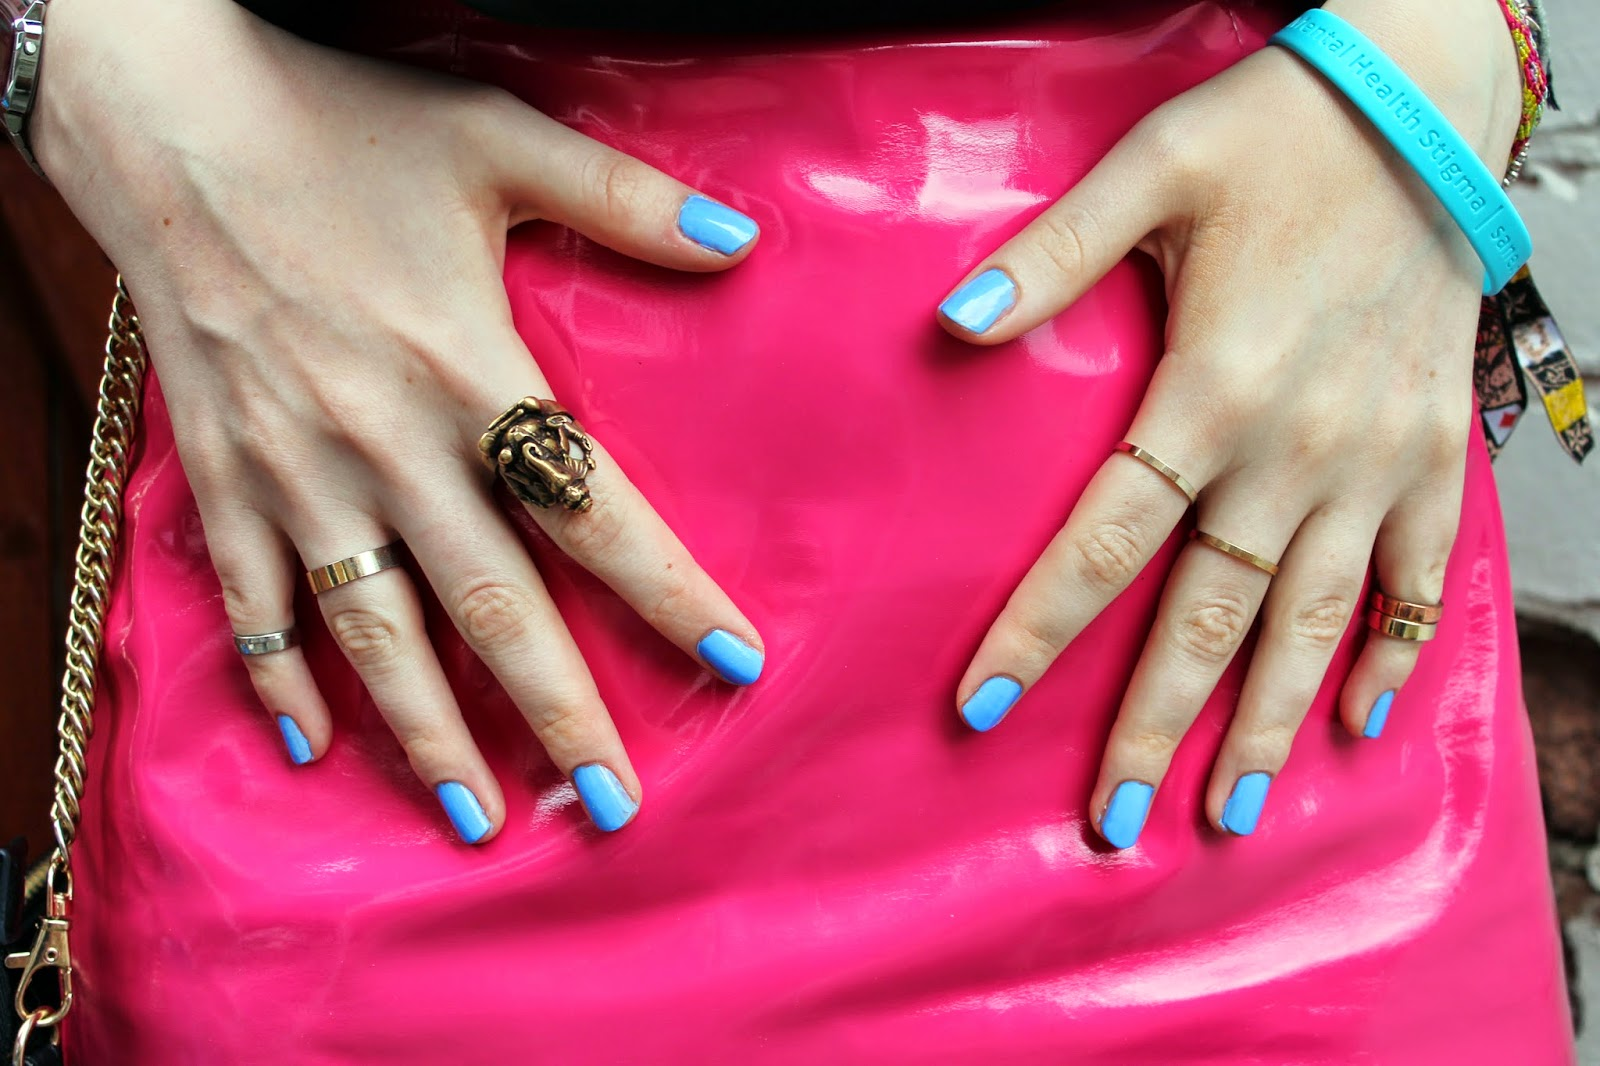 pink pvc mini skirt with mint nails and stacked rings from topshop and primark including ganesh ring